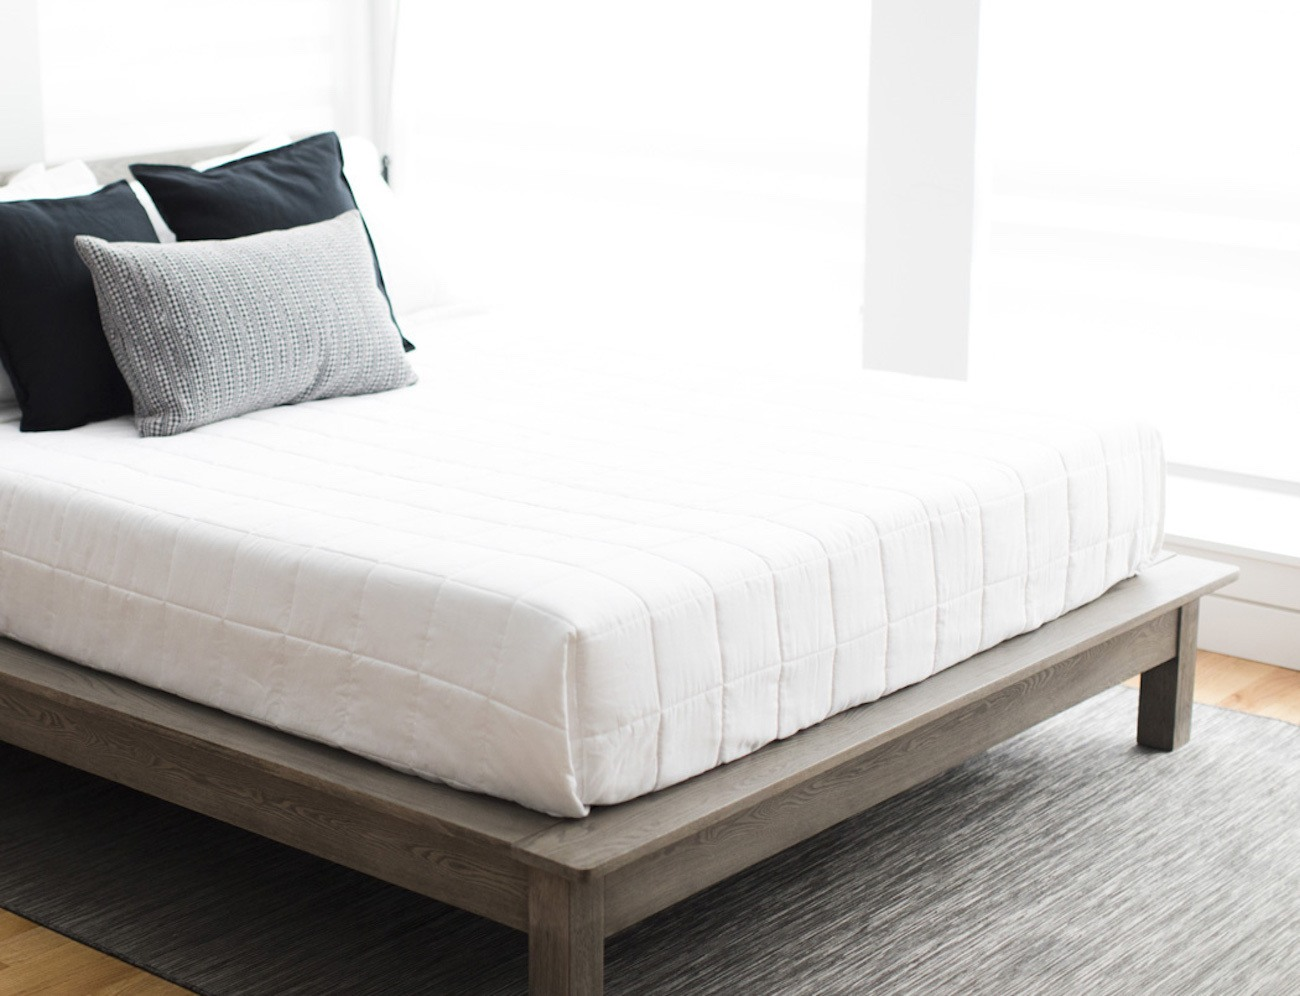 PONS Advanced Bed System